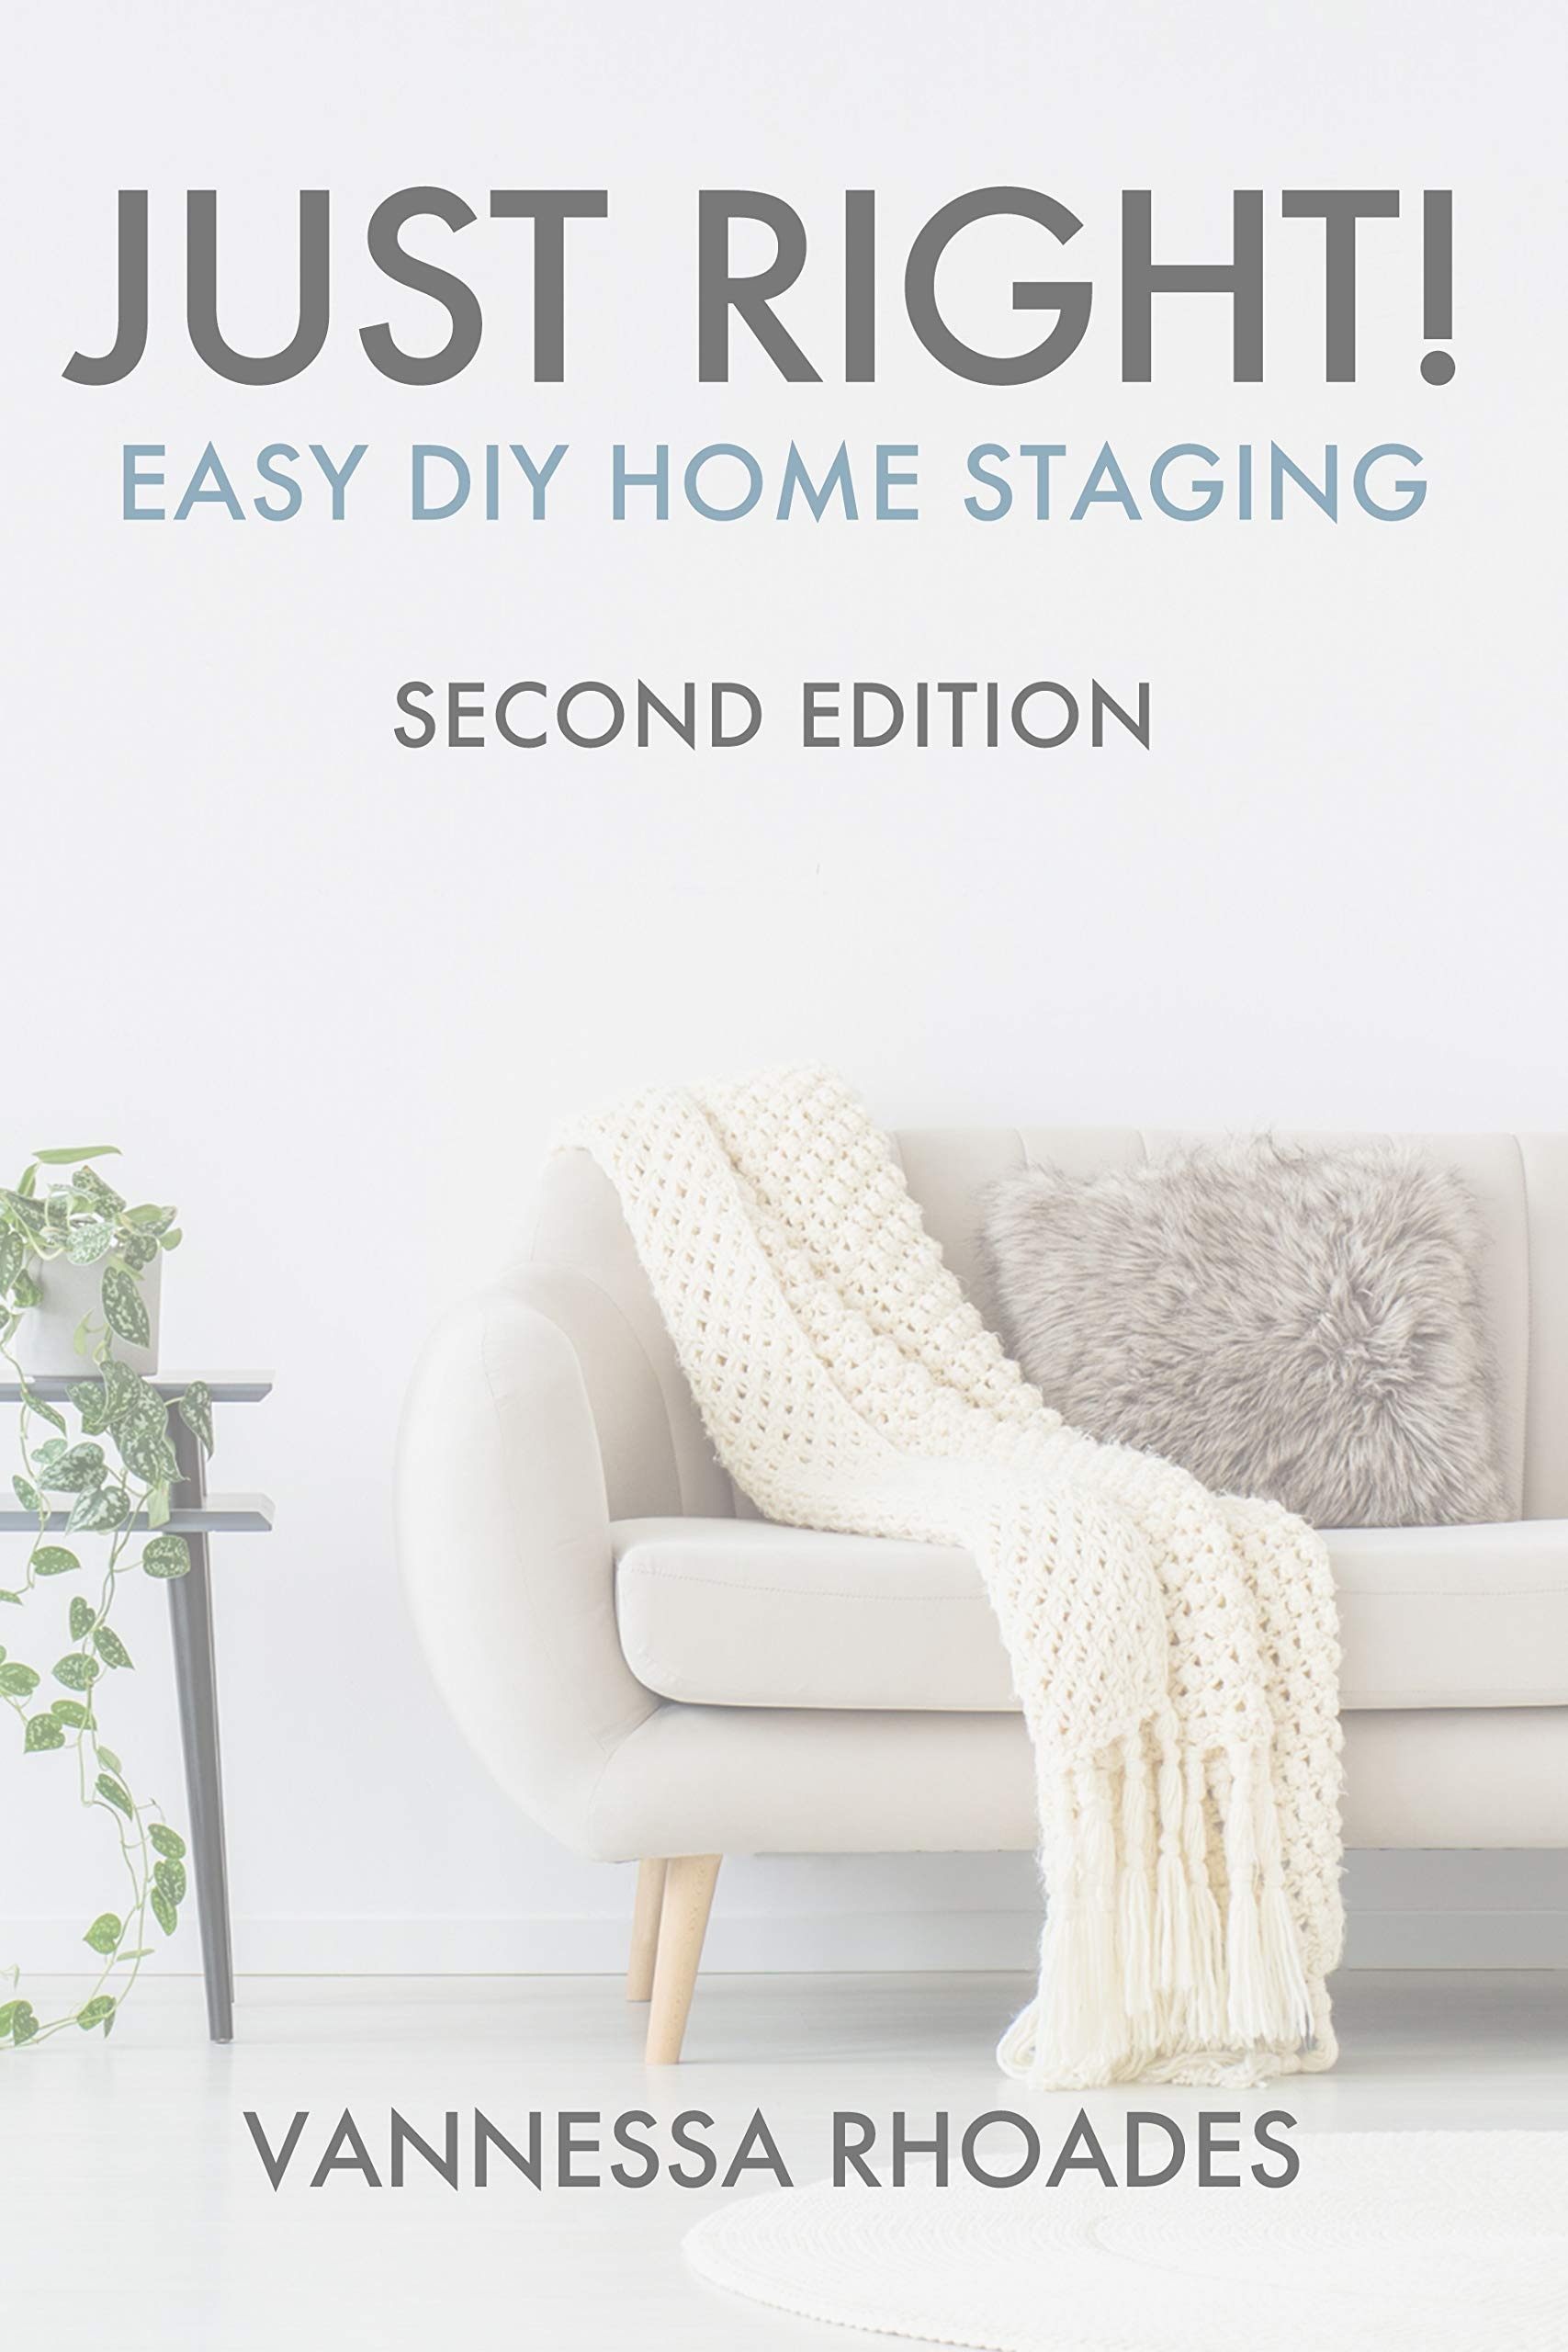 Just Right! Easy DIY Home Staging: Second Edition